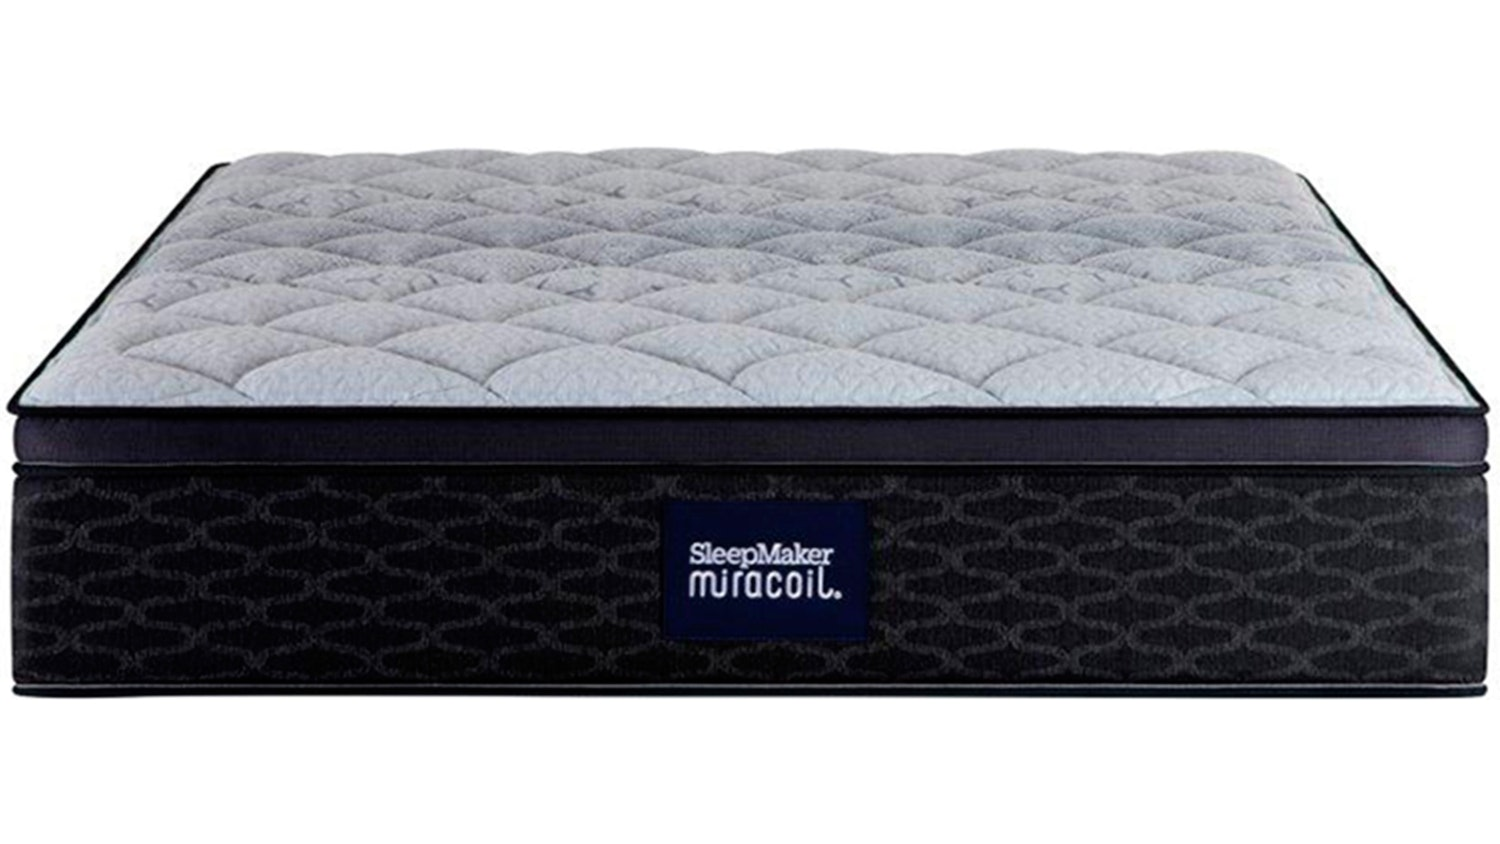 Sleepmaker Miracoil Armadale Medium Mattress